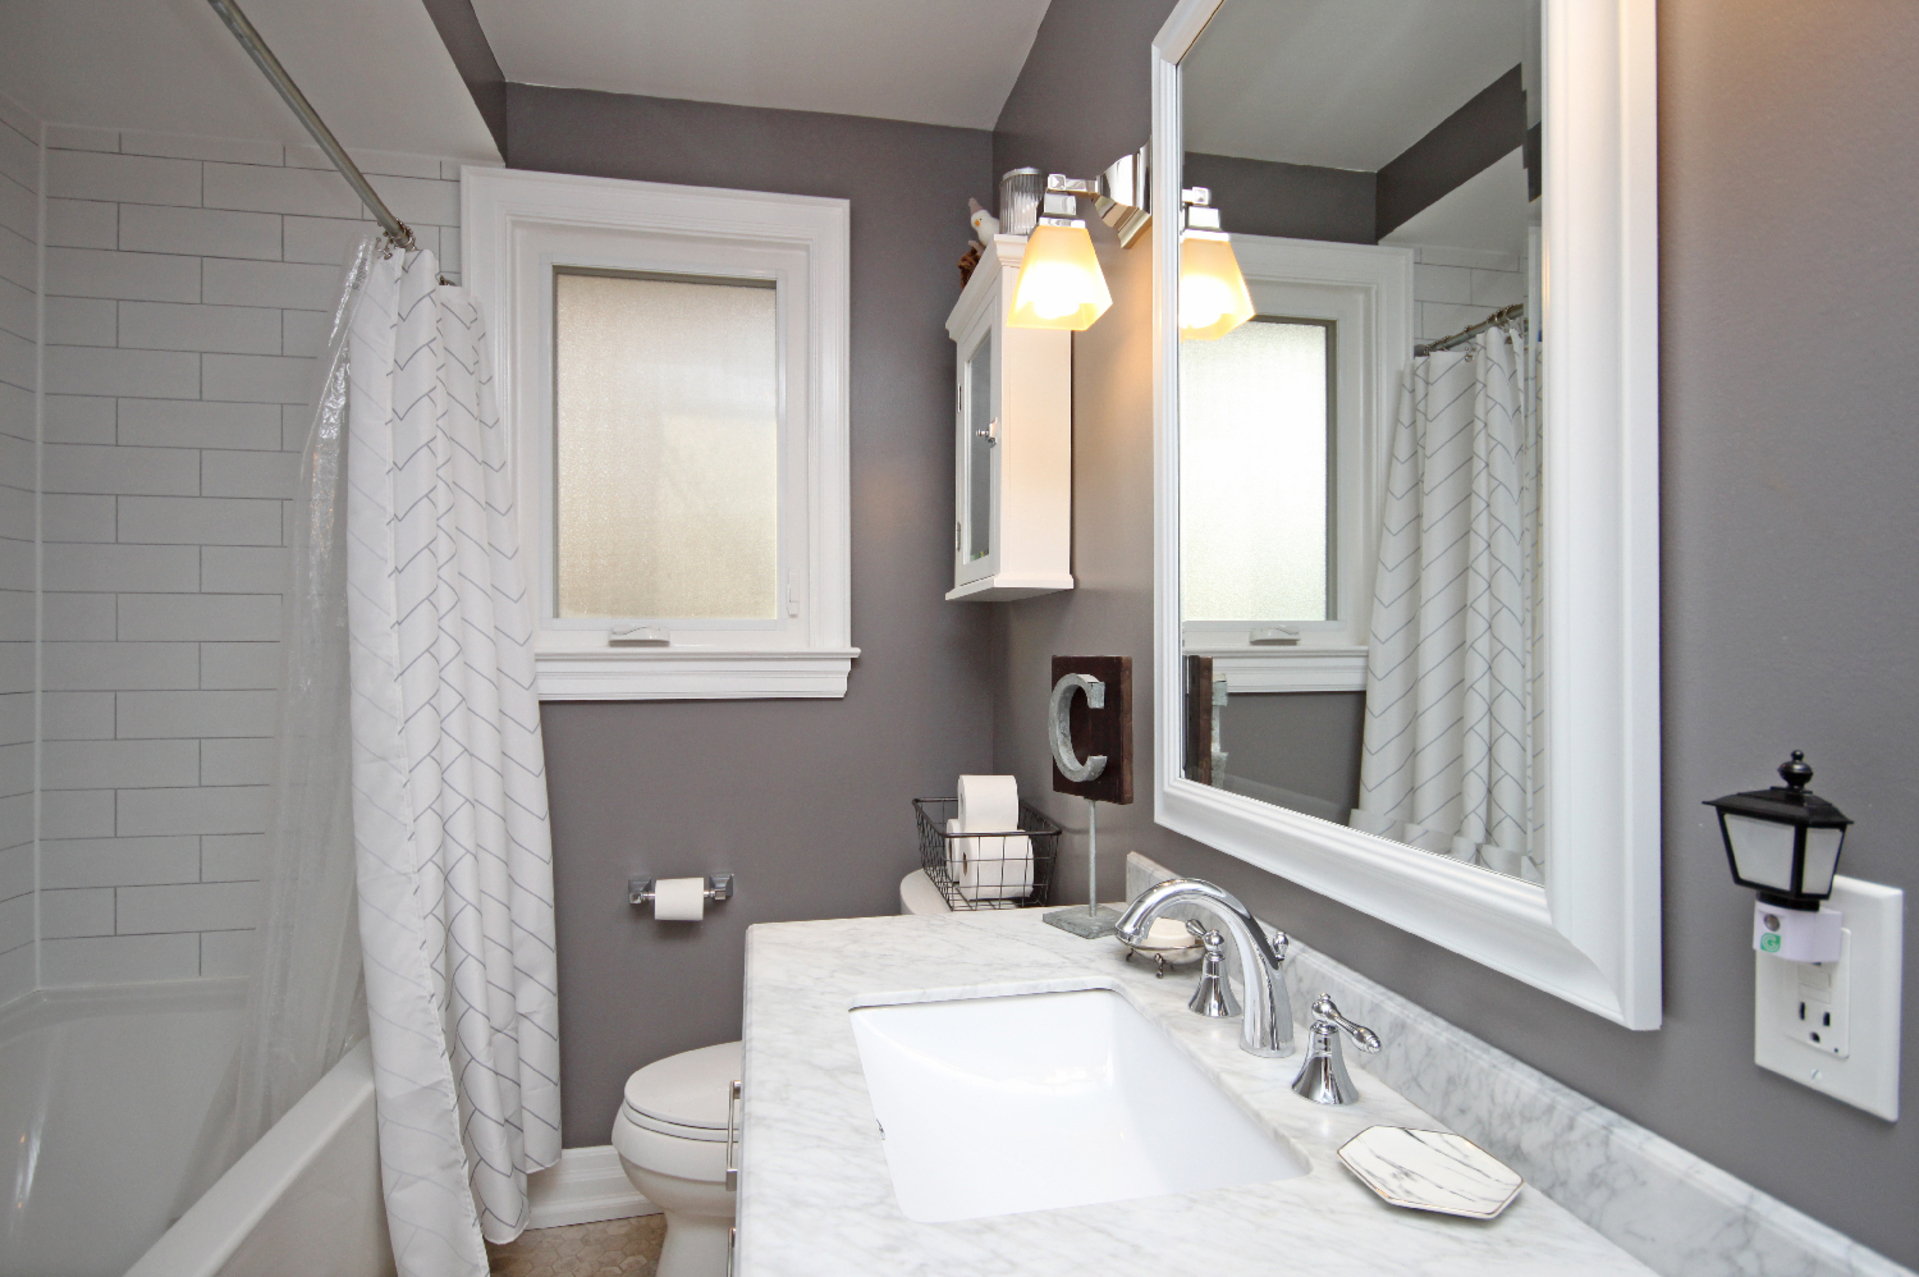 4 Piece Bathroom at 9 Coral Cove Crescent, Parkwoods-Donalda, Toronto